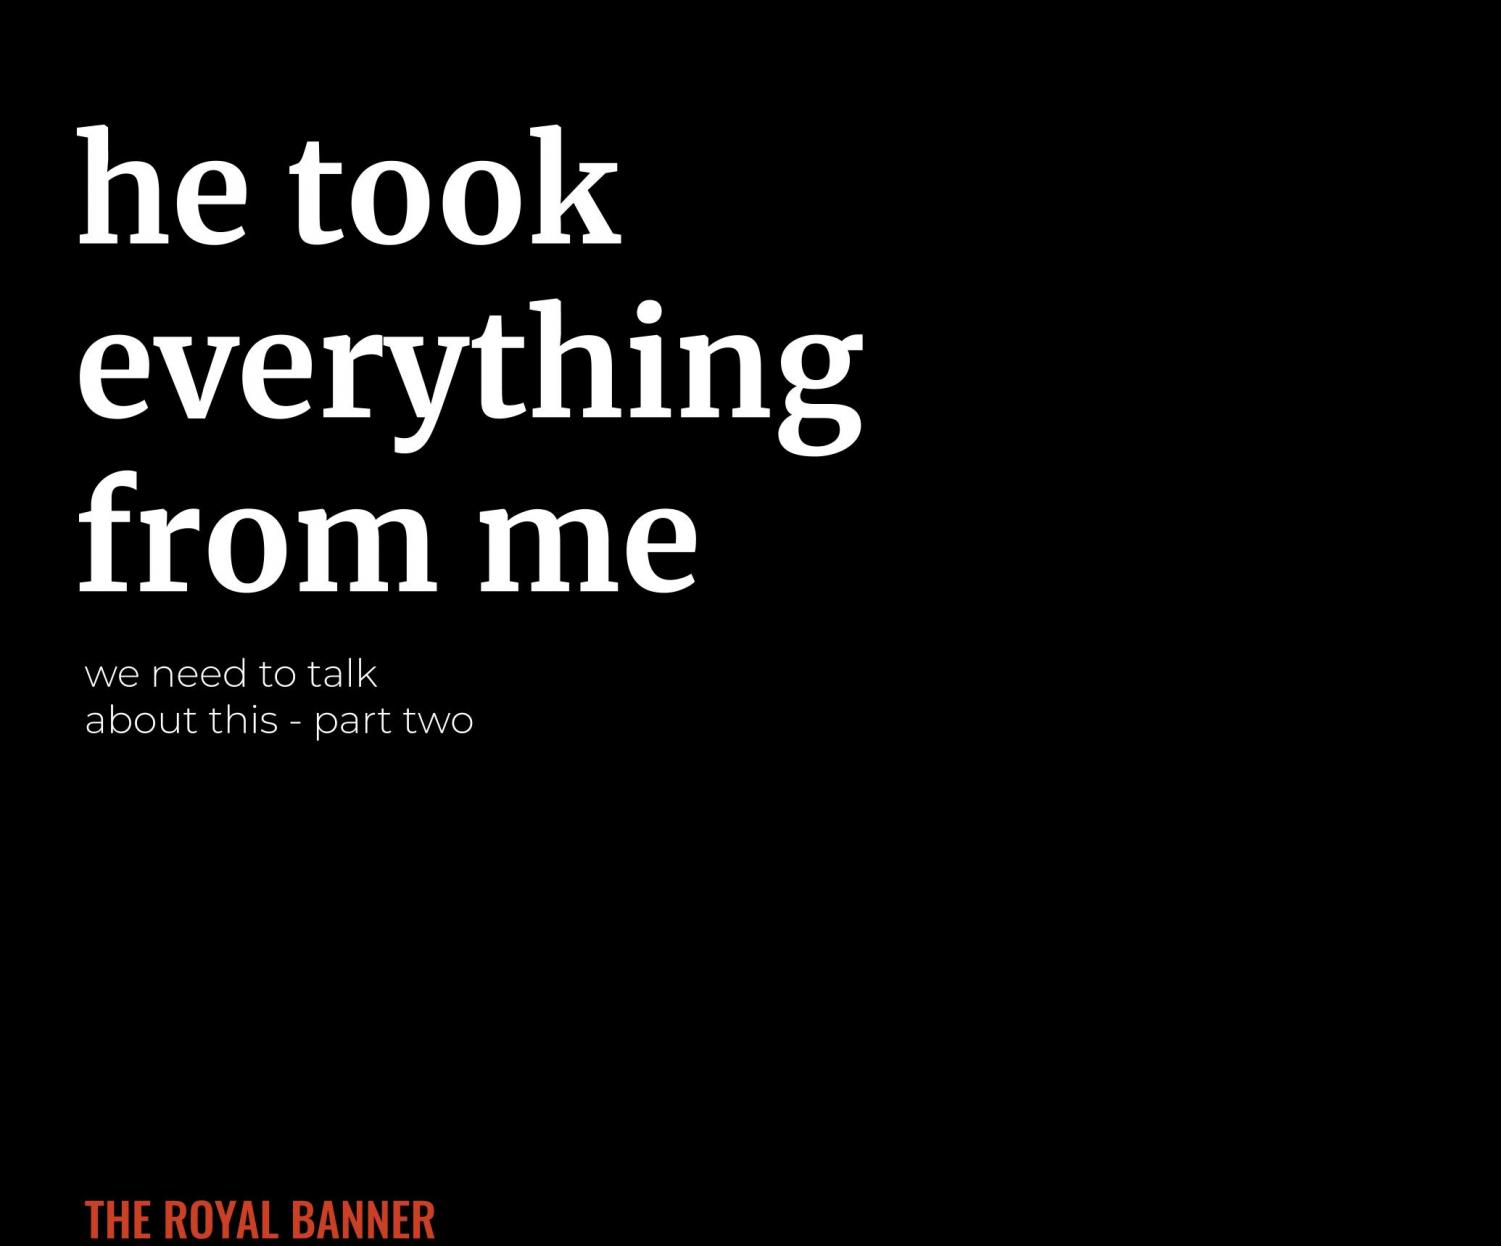 This is the second part in the Banner's series on sexual abuse.